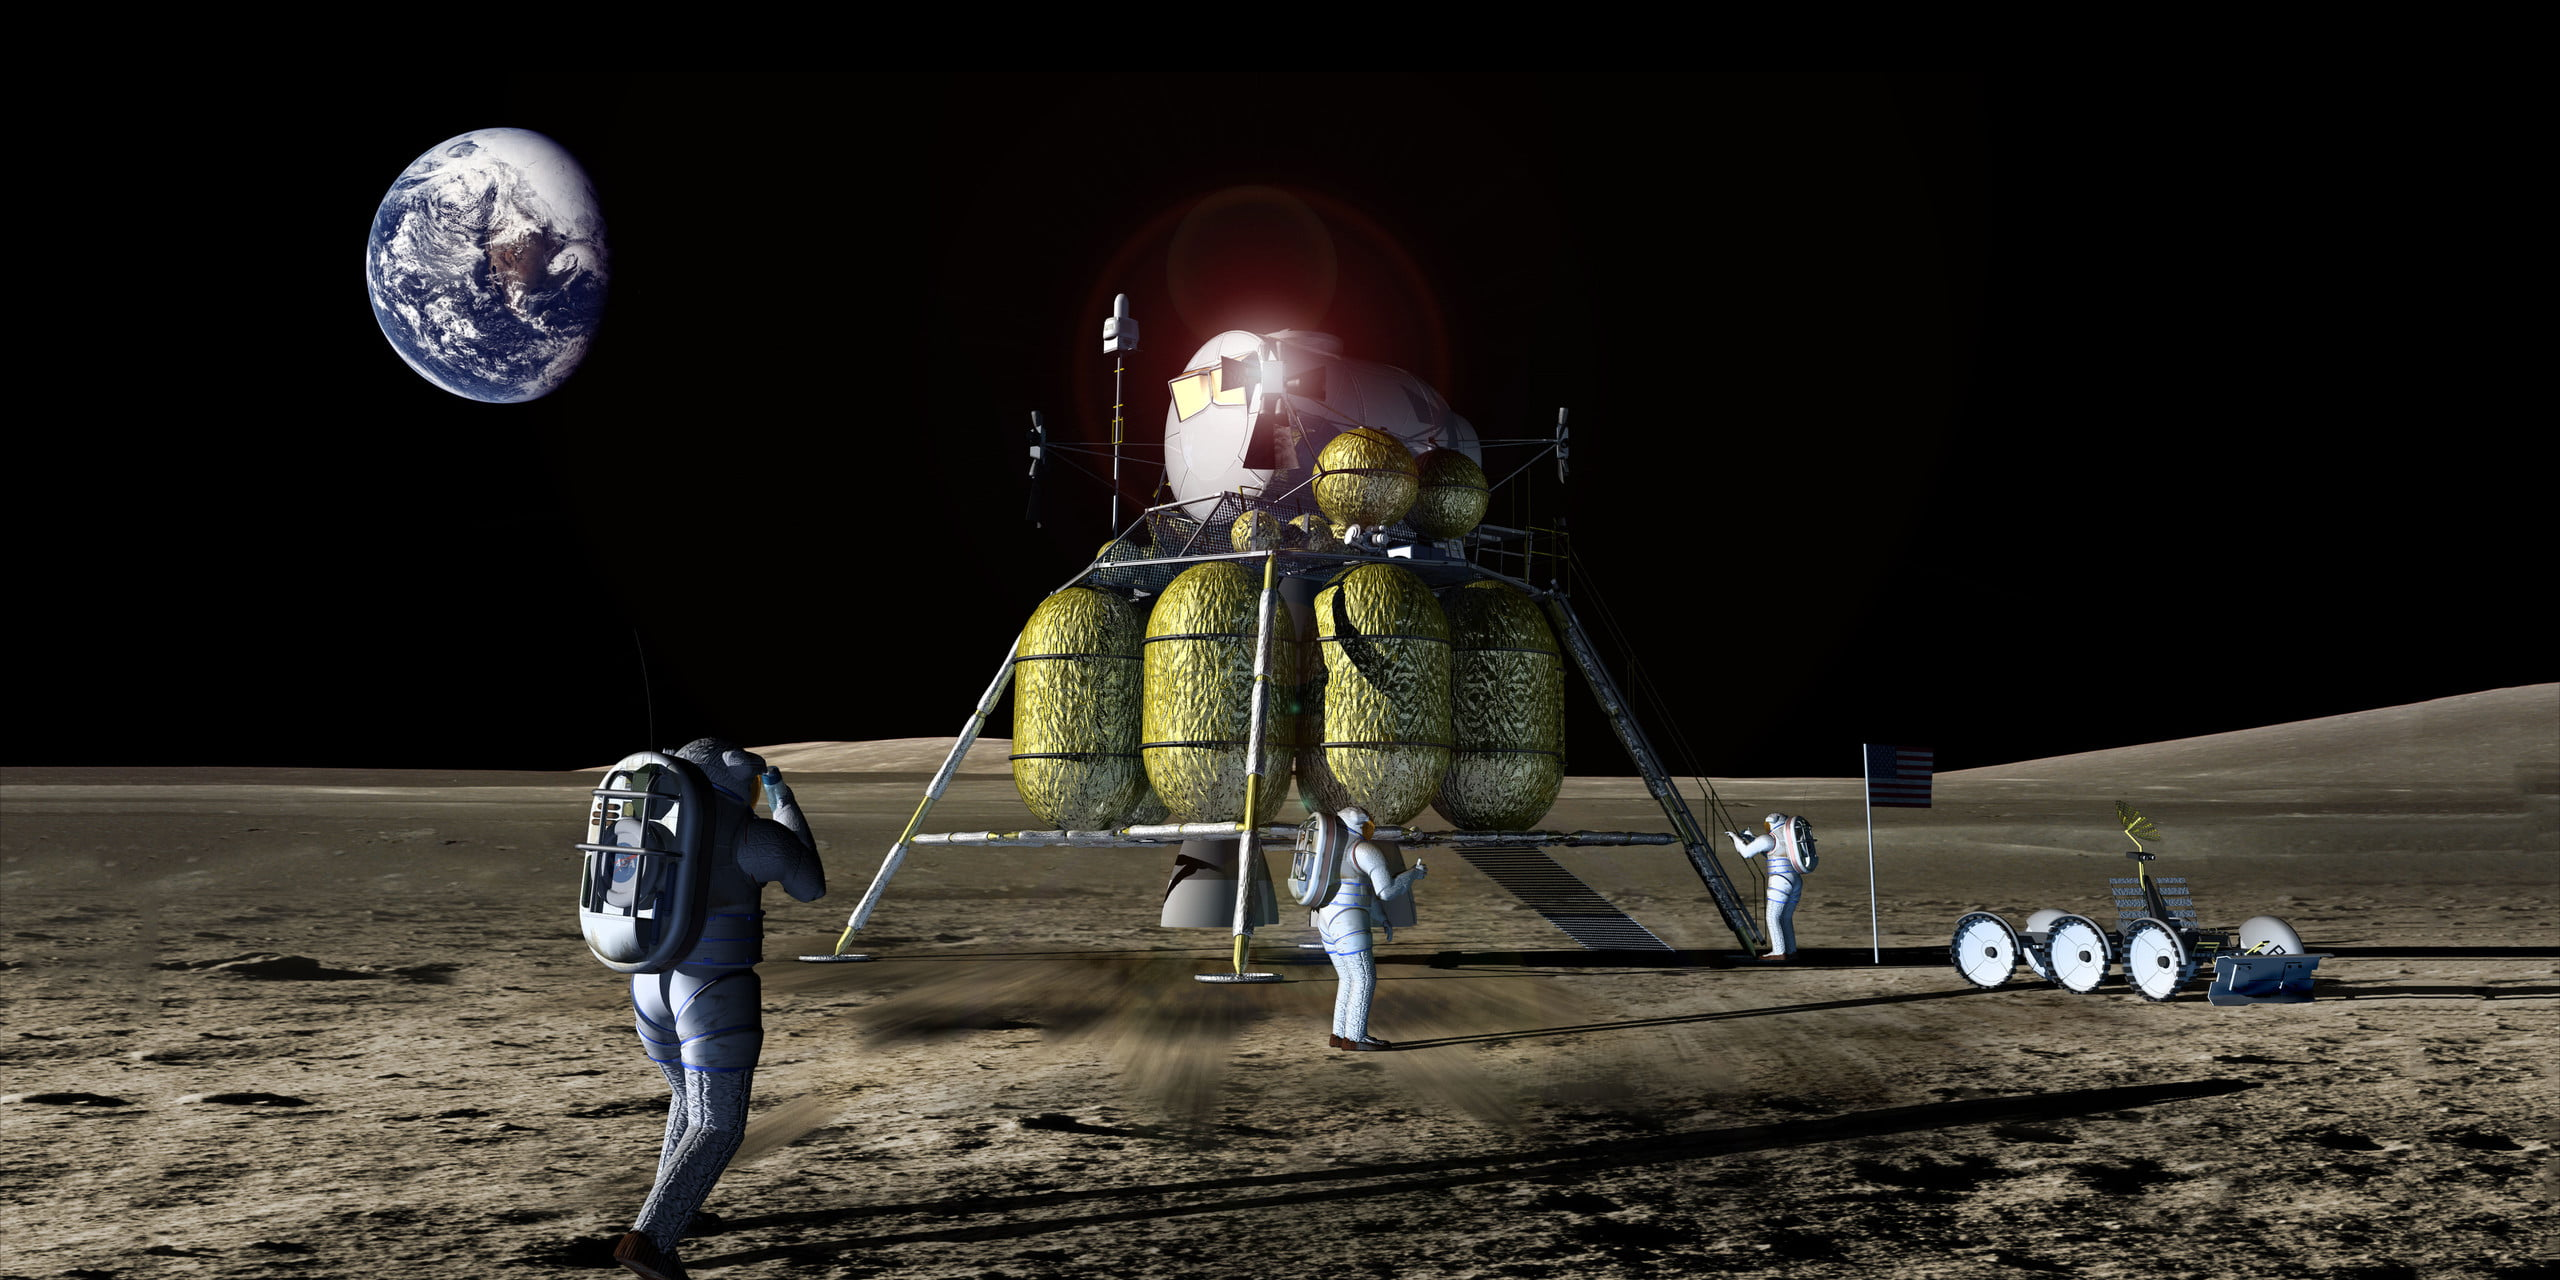 lunar space program - photo #2